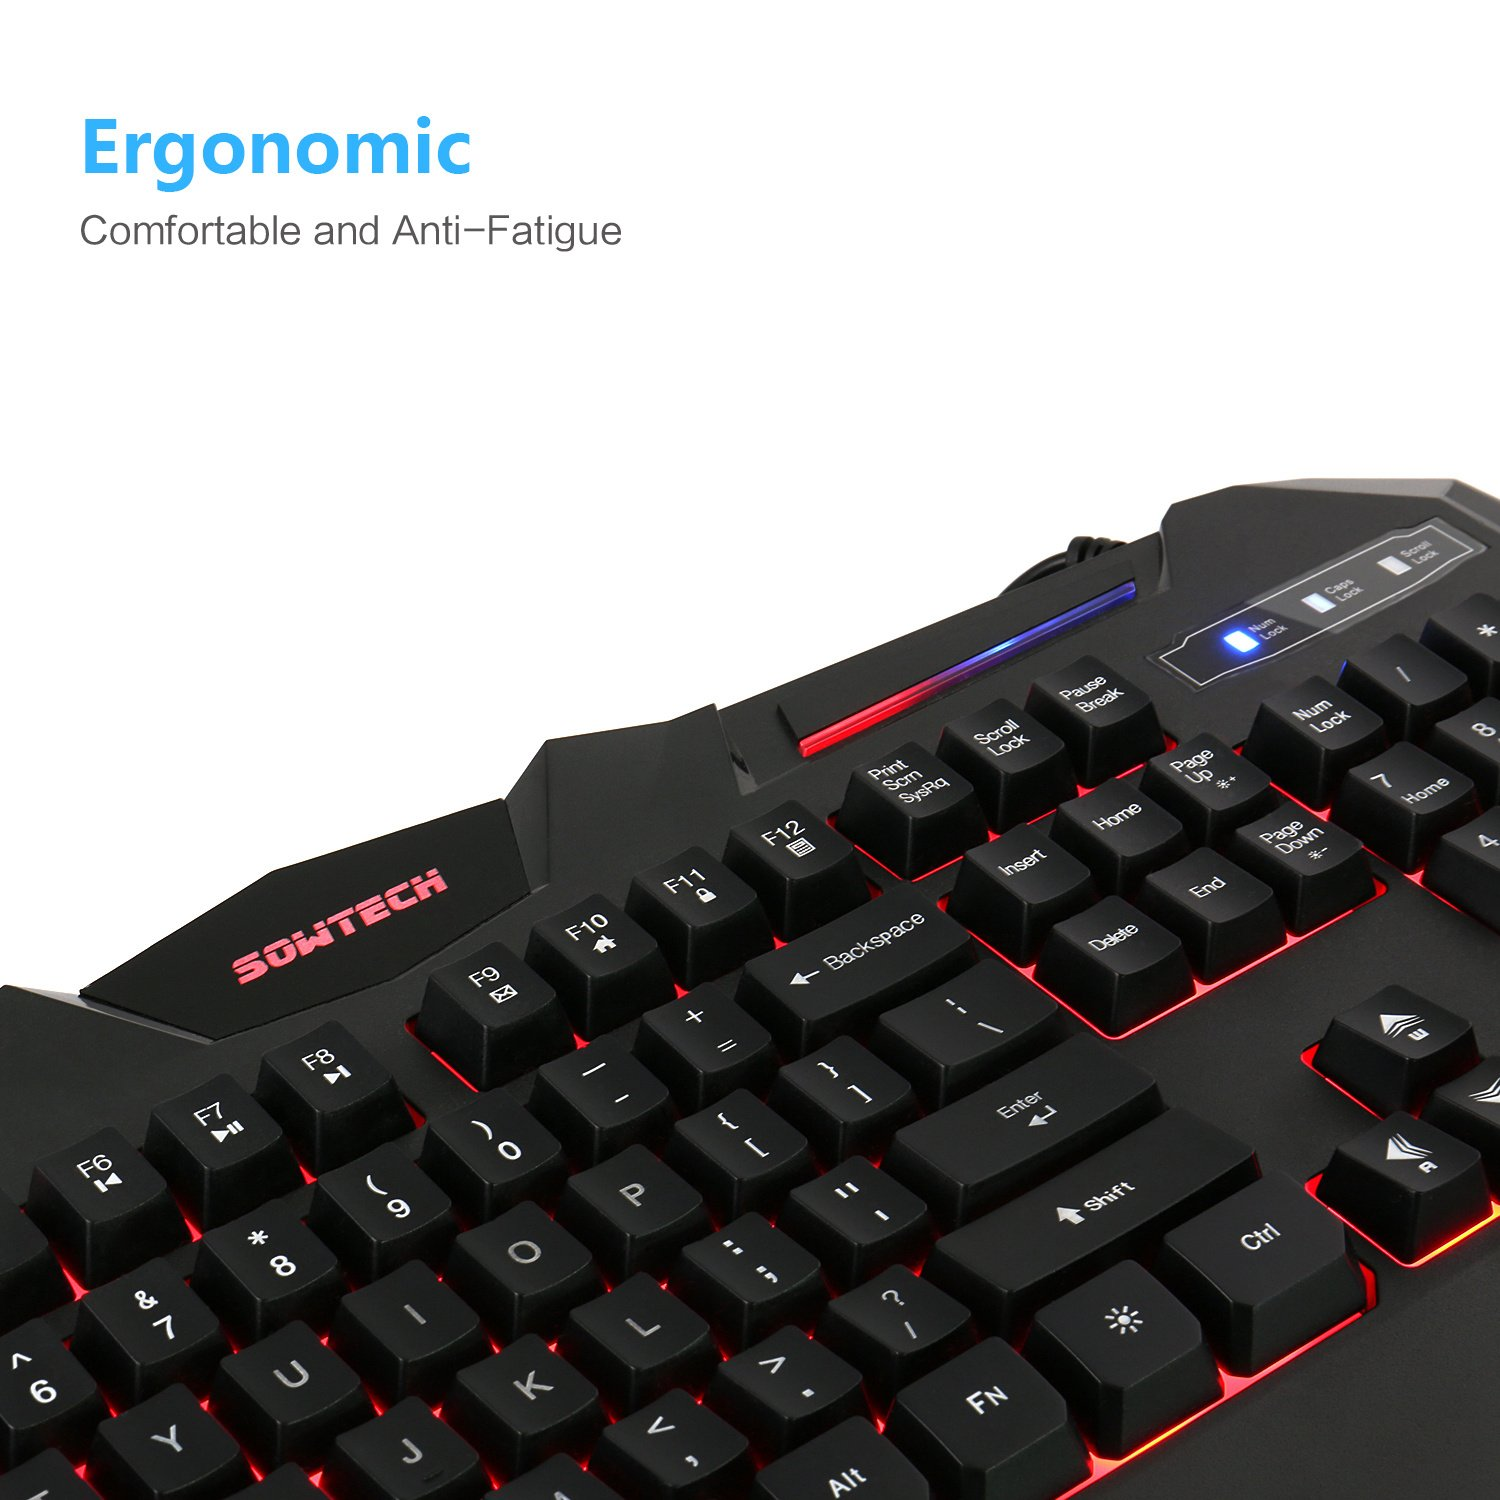 SOWTECH Gaming Keyboard Three Colors LED Backlit RGB illuminated keyboard for Gaming Office, US Layout